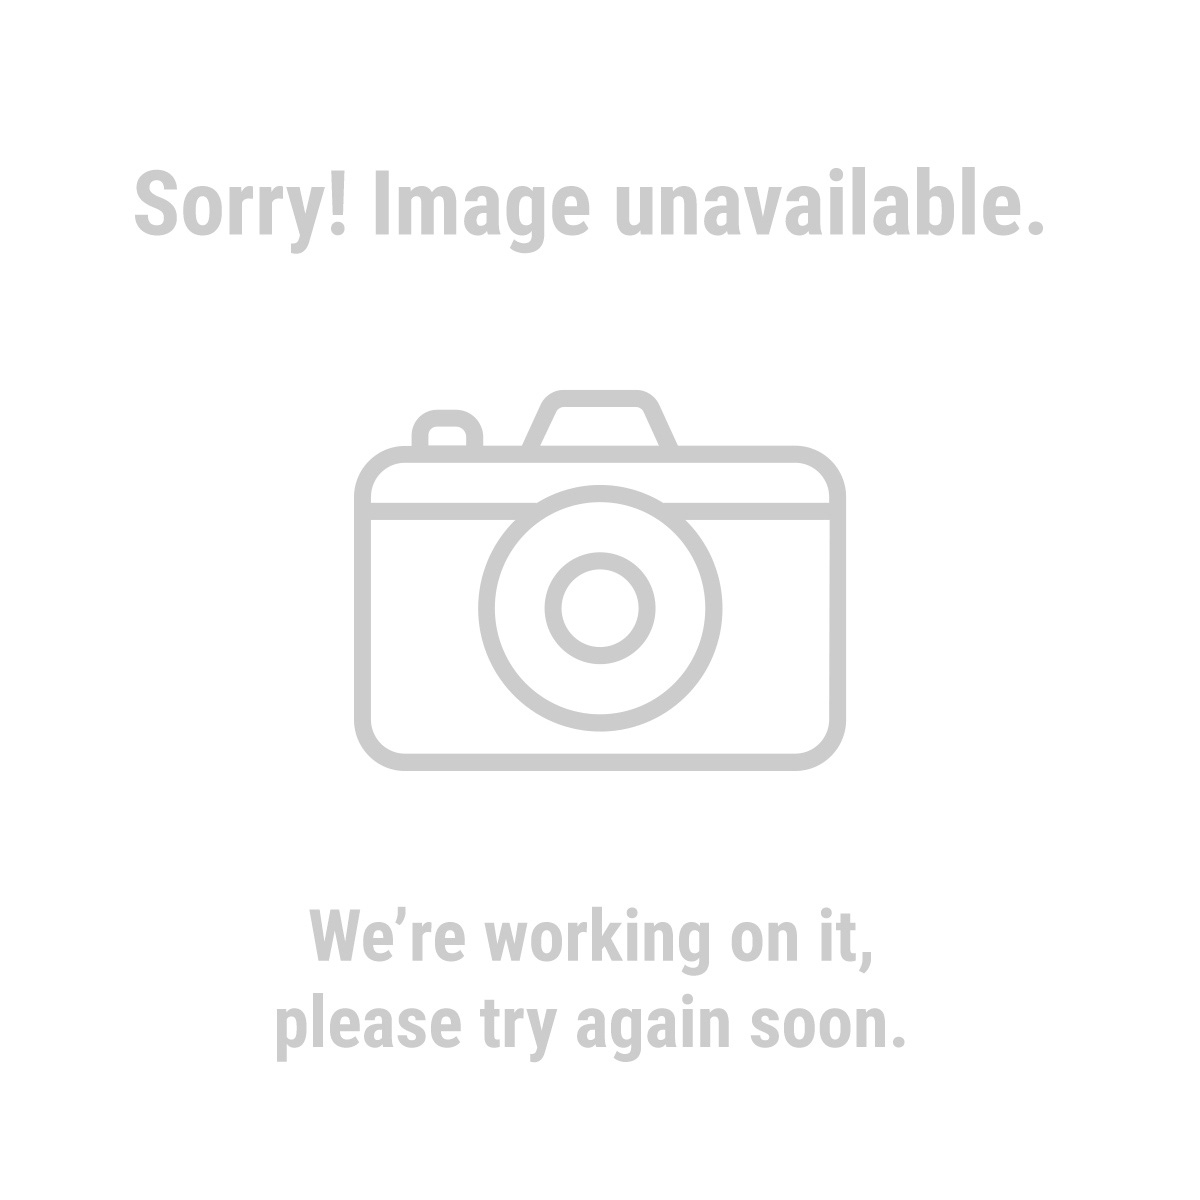 Drill Master 62873 18 Volt 3/8 in. Cordless Drill/Driver With Keyless Chuck, 21 Clutch Settings